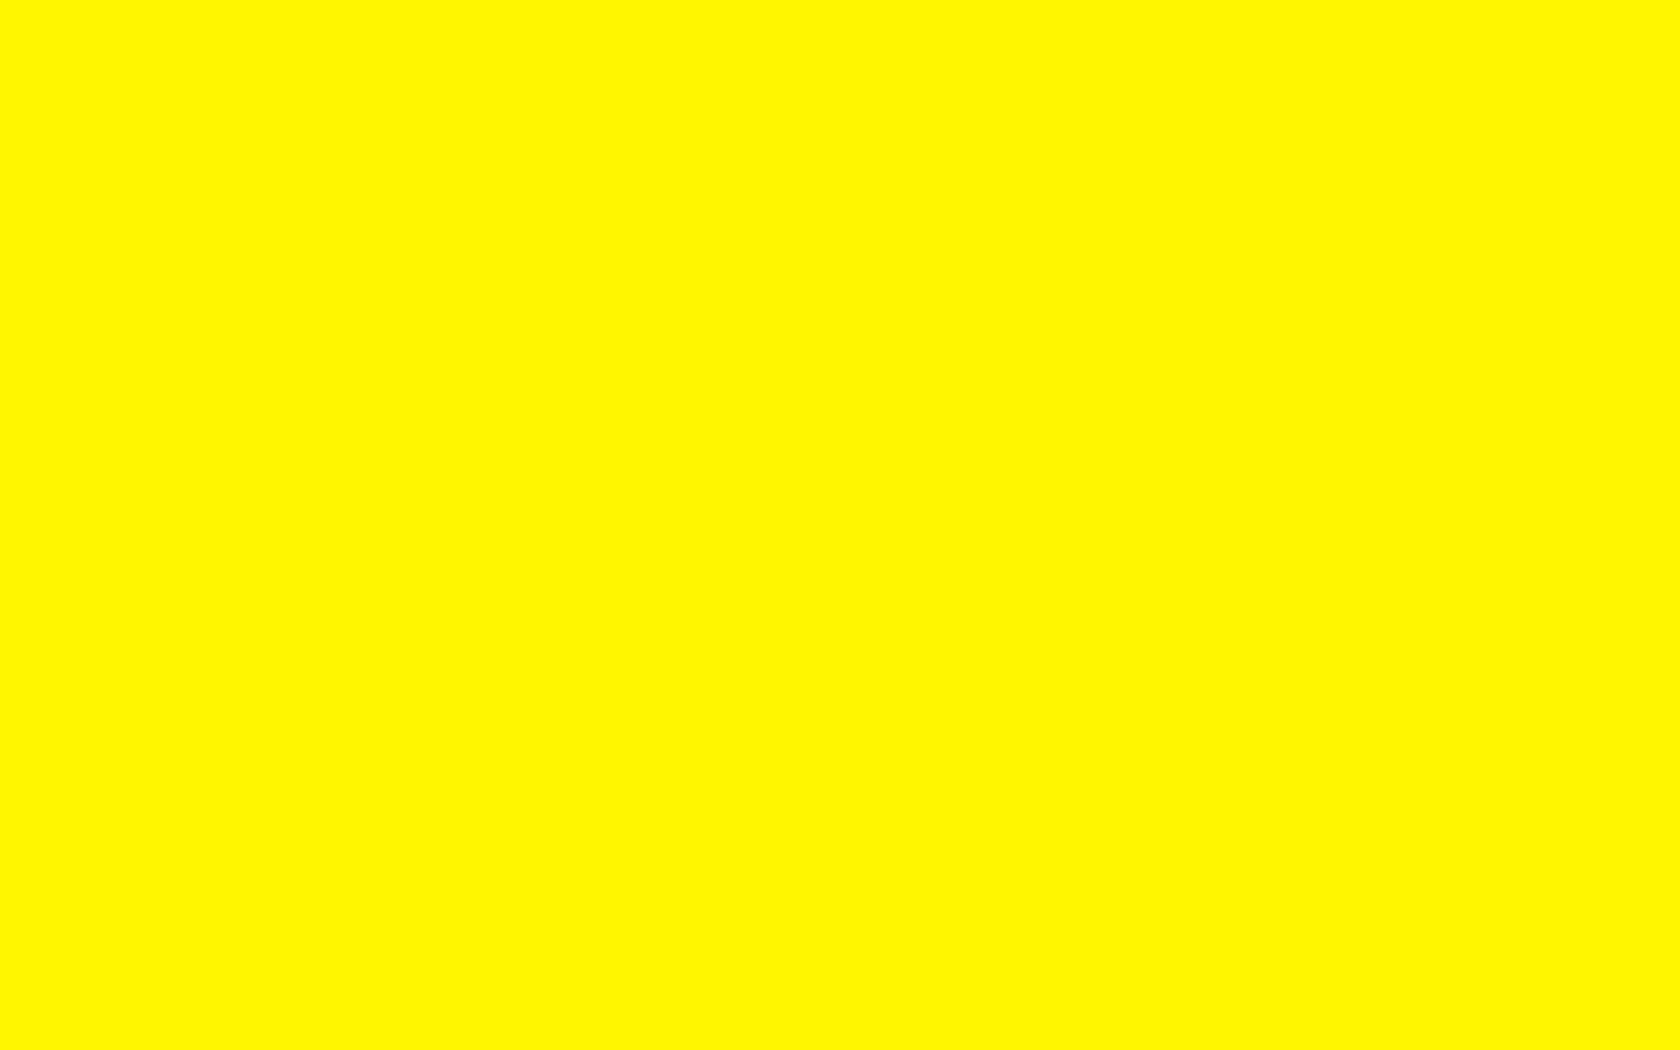 1680x1050 Cadmium Yellow Solid Color Background